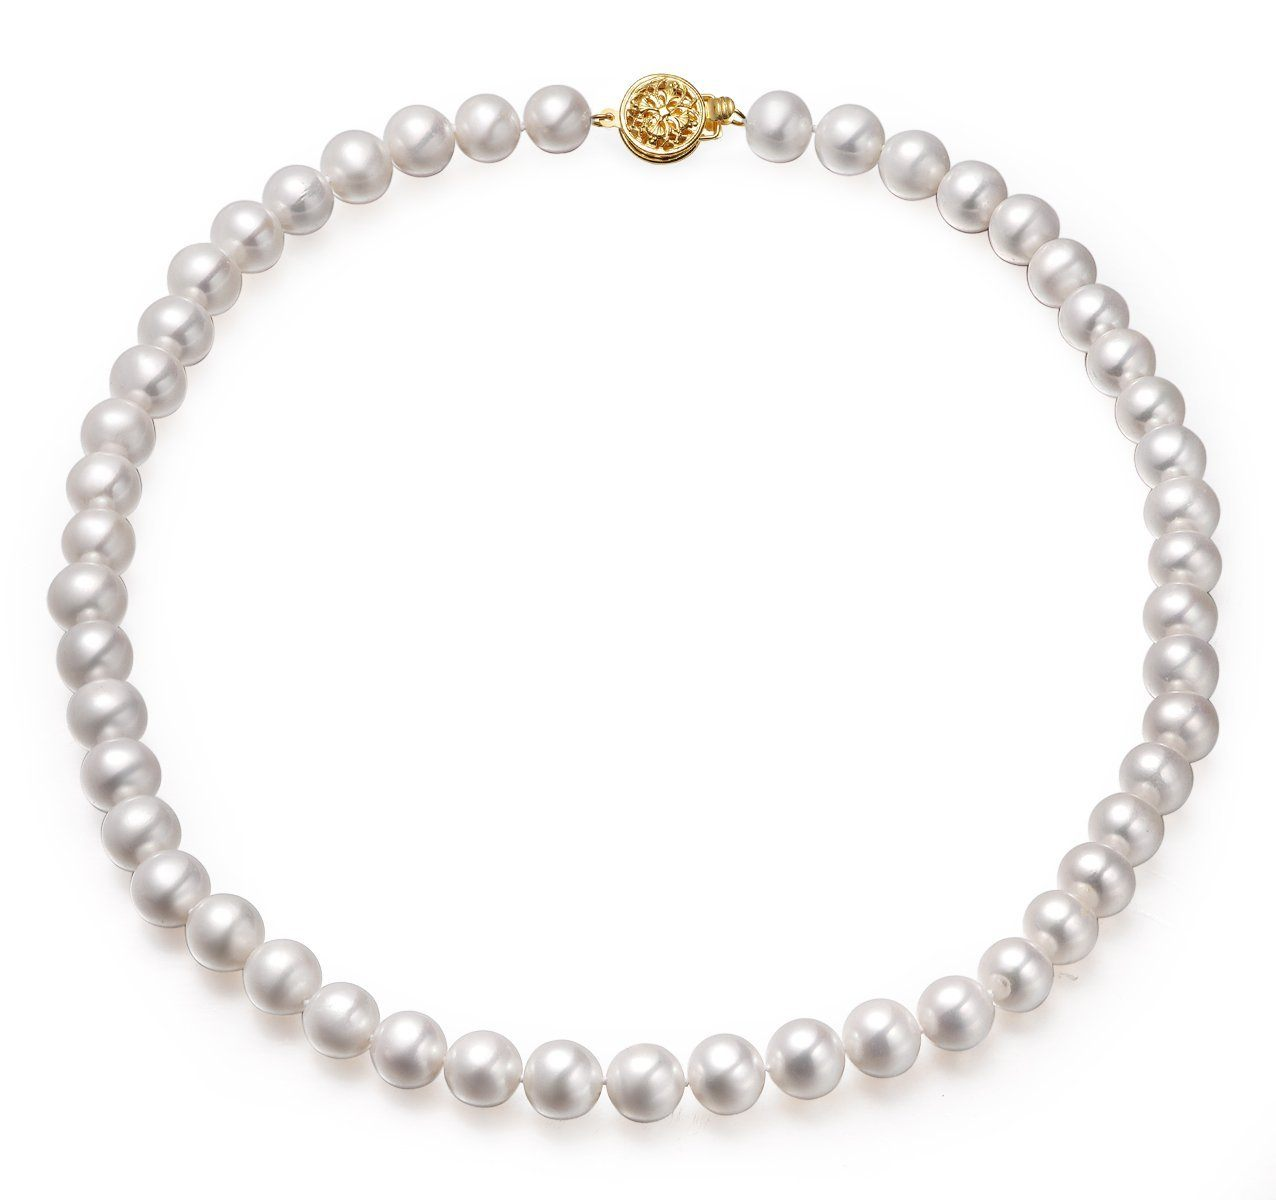 white 8-9mm aaa quality cultured freshwater pearl necklace with 14k solid yellow gold round filigree